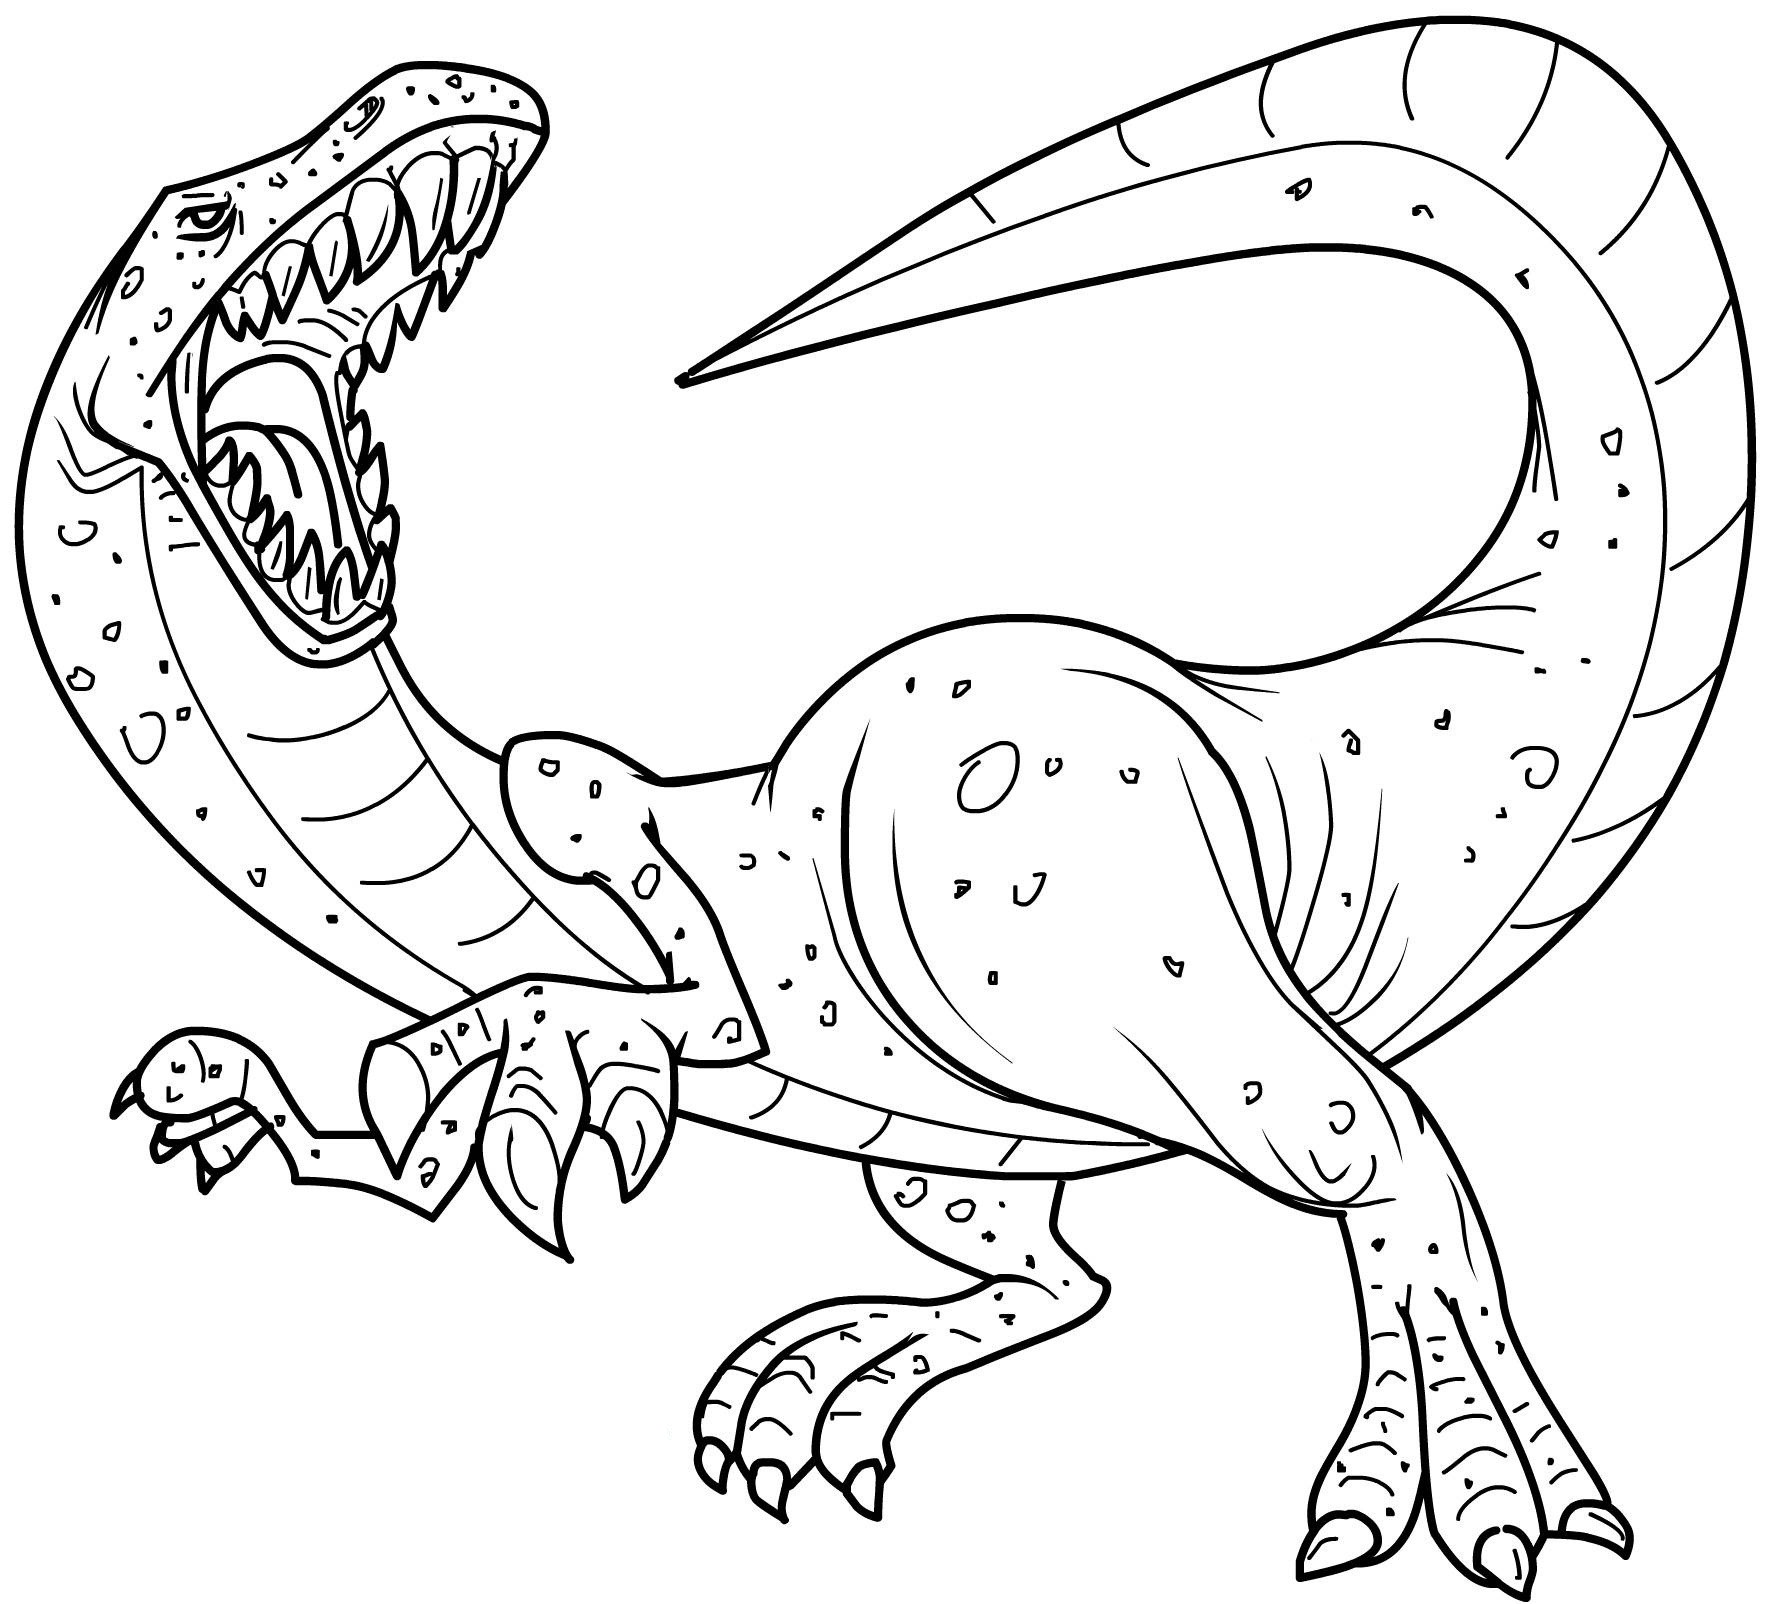 free printable coloring pages of dinosaurs coloring pages dinosaur free printable coloring pages of free pages dinosaurs coloring printable